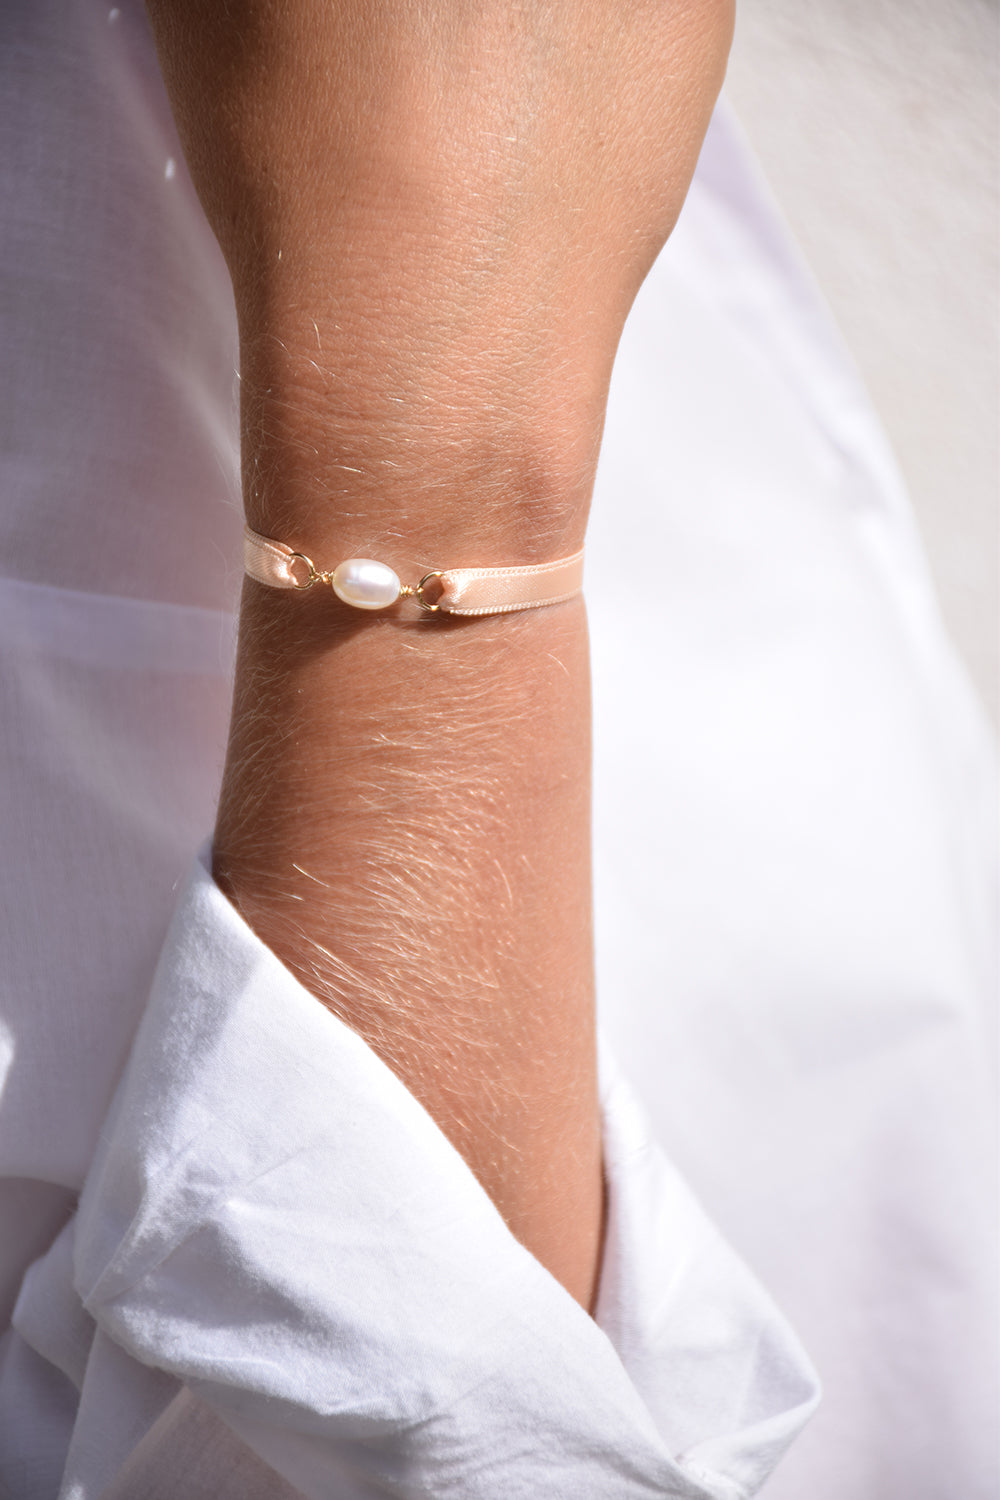 Bracelet ruban satin | Rose sorbet